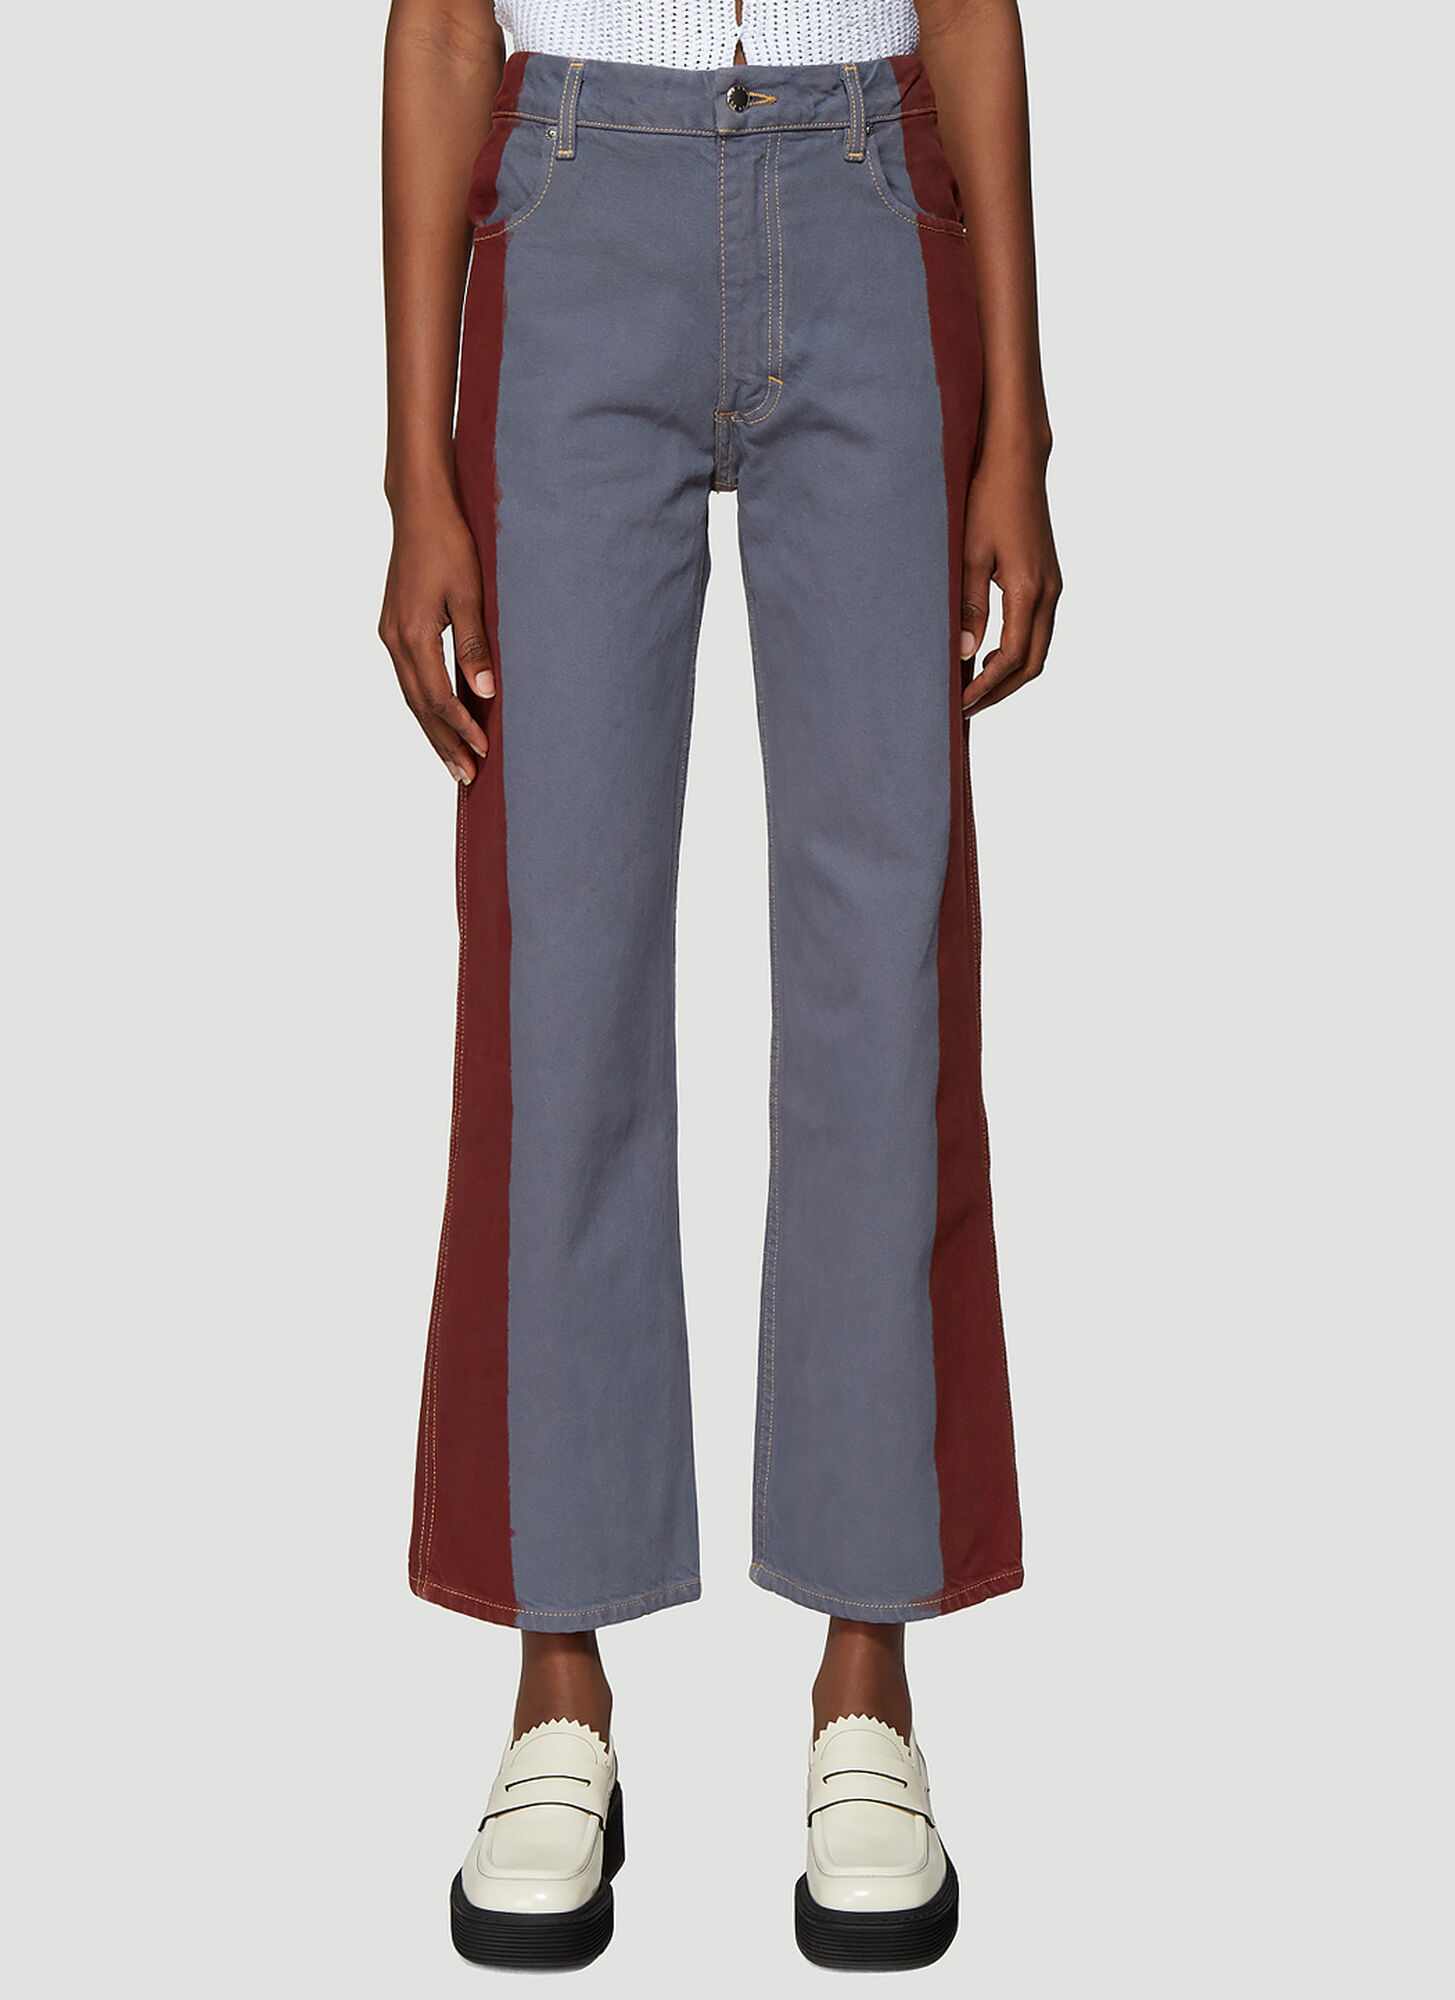 Eckhaus Latta Dip Dye Wide Leg Jeans in Blue